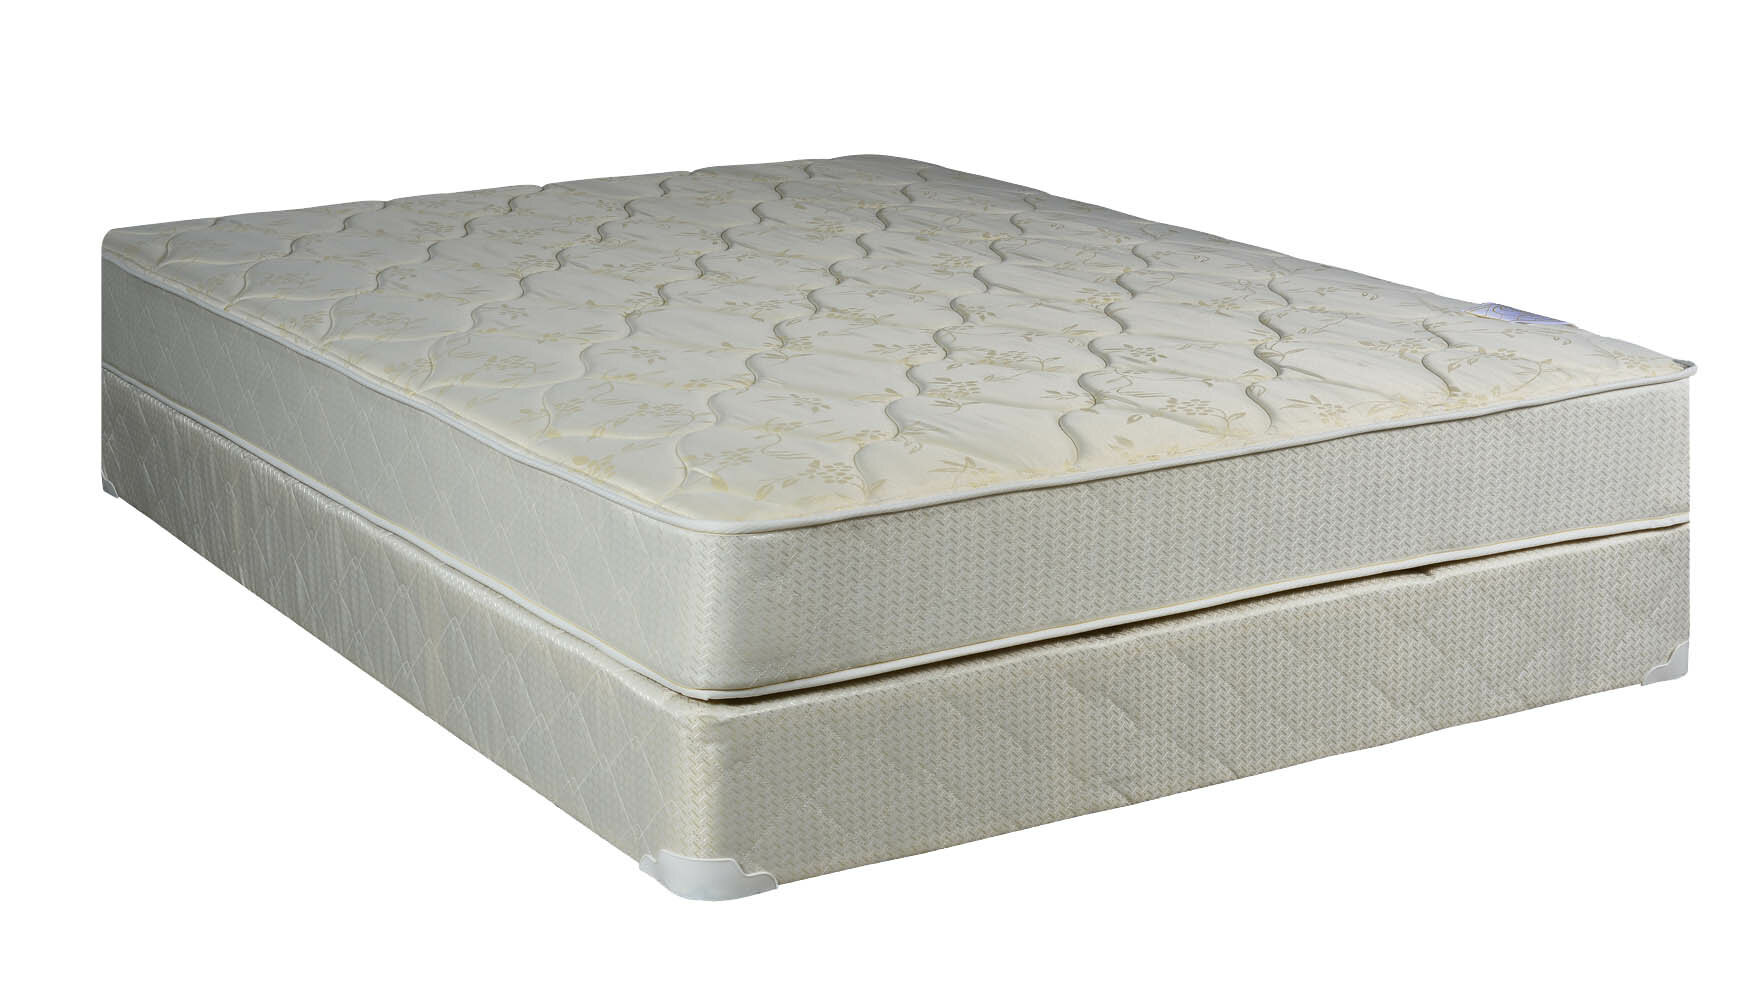 multiple innerspring dhp full com futon coil walmart mattress in futons colors available ip